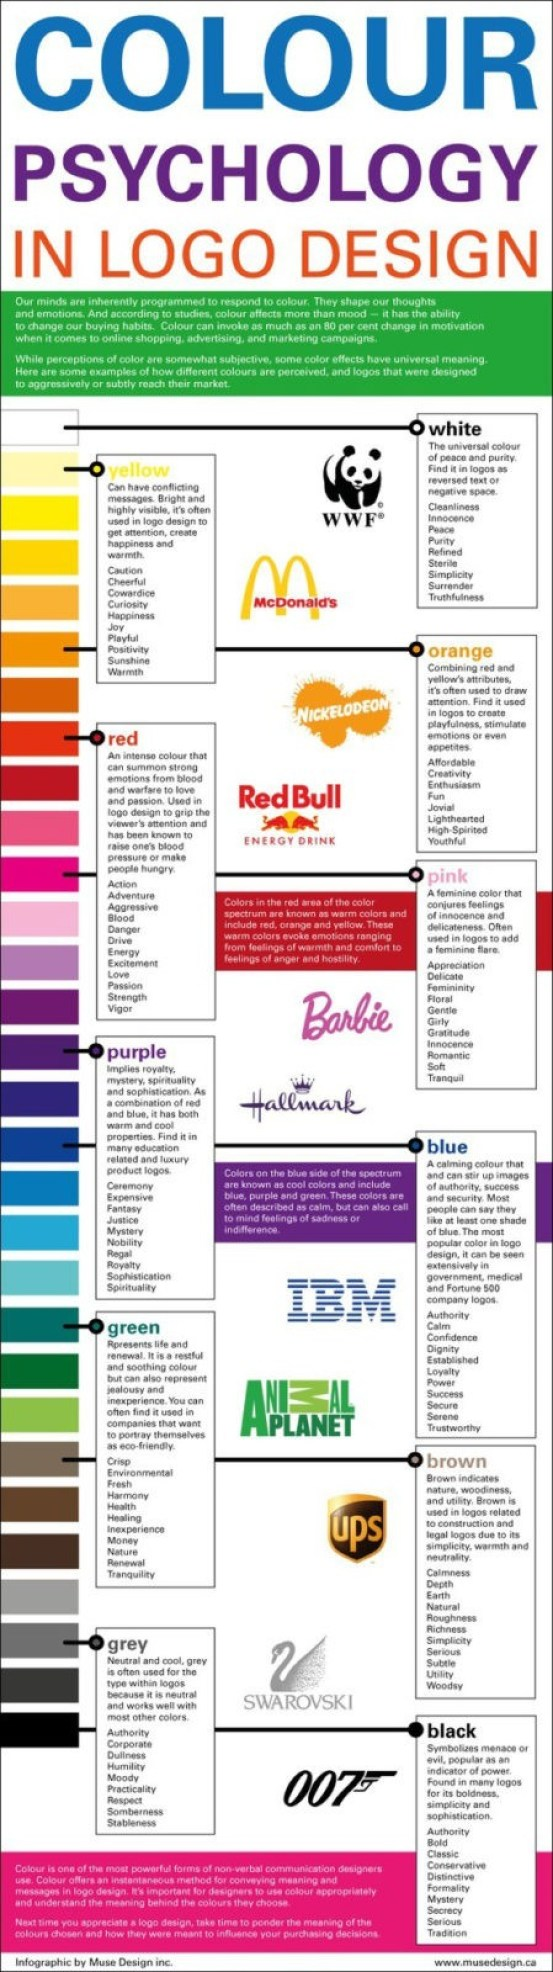 Colour Psychology in Logo Design - Infographic